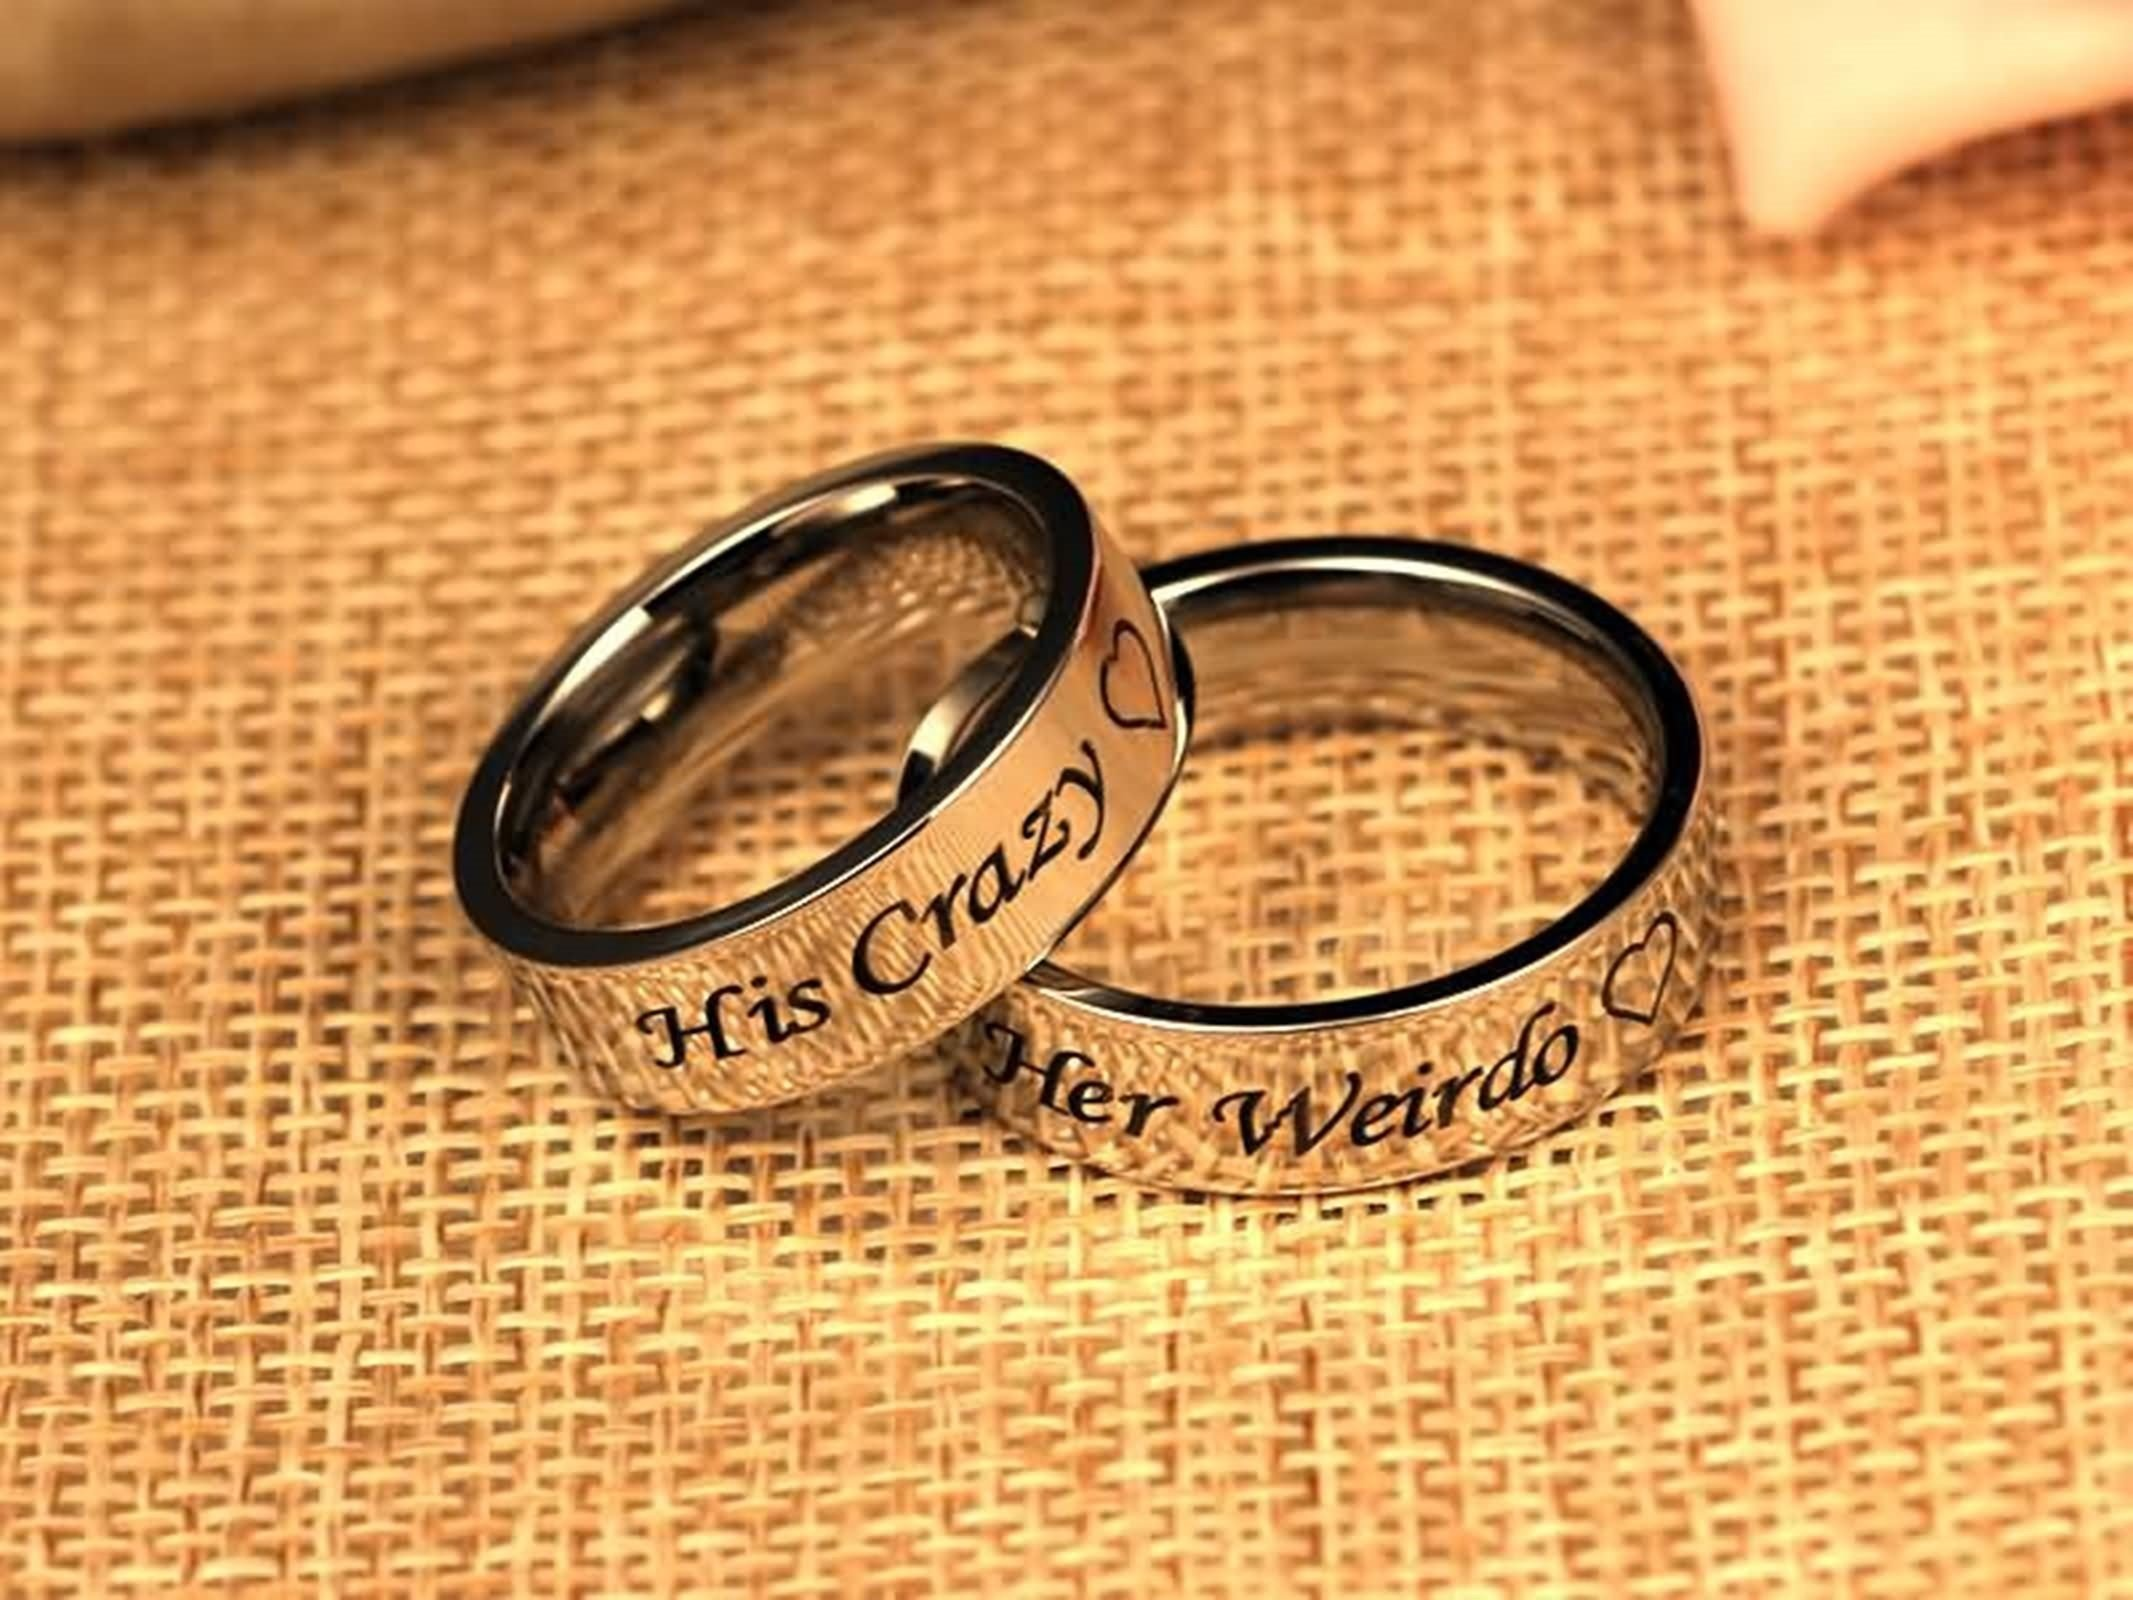 Daesar 1PCS Couple Ring Bands Stainless Steel Ring Engraved His Crazy Heart Silver Wedding Rings Ring Size 11 by Daesar (Image #2)